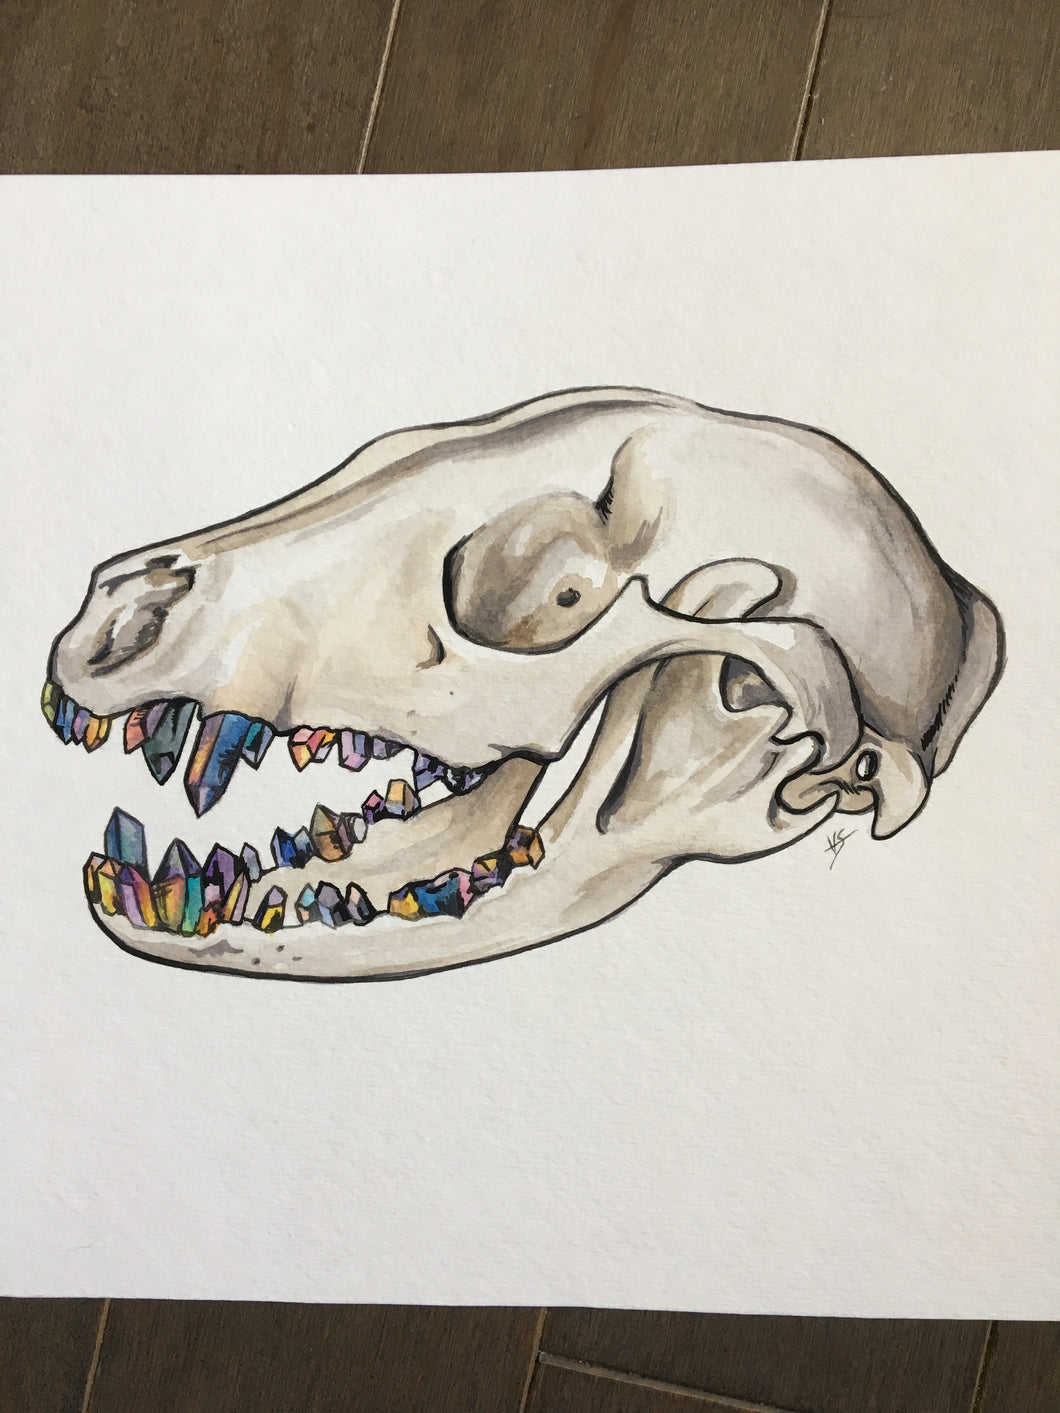 Skull with a grill